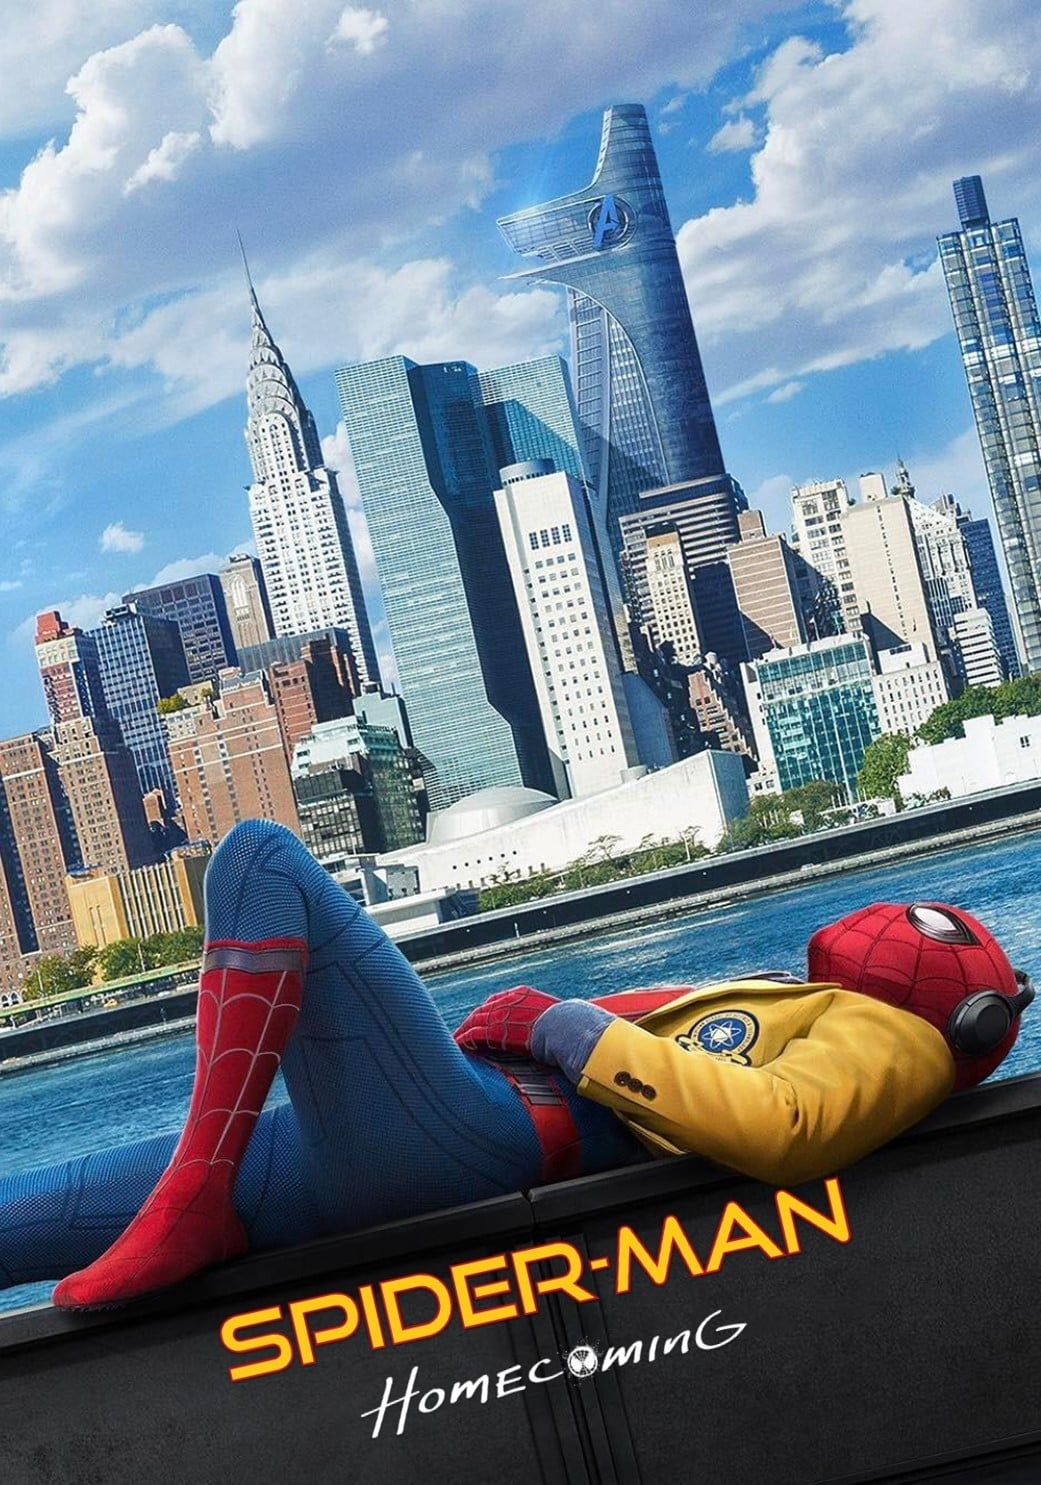 image for Spider-Man: Homecoming